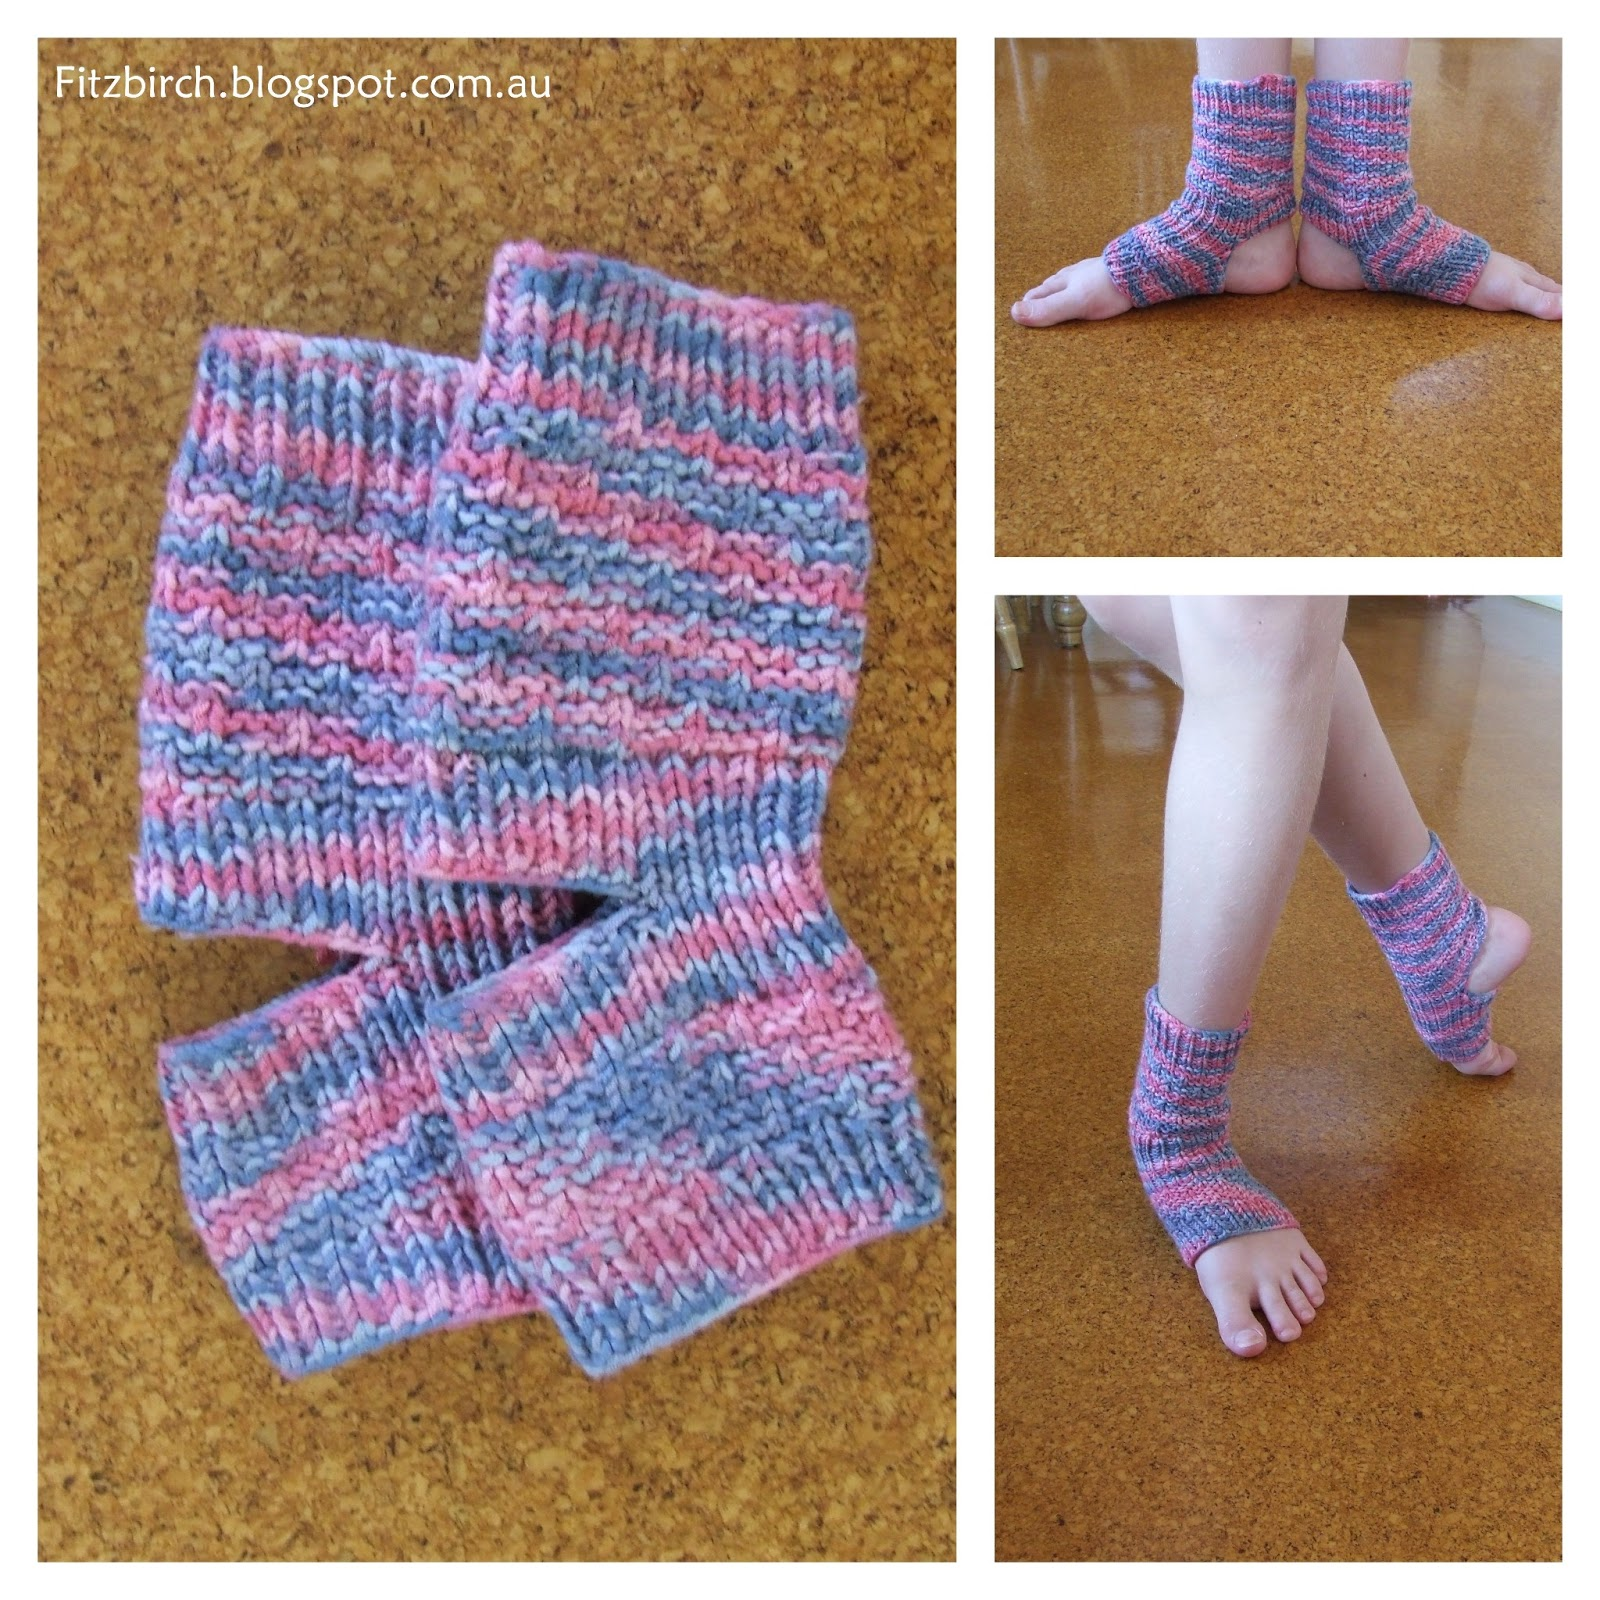 FitzBirch Crafts: Yoga Socks for a Ballerina